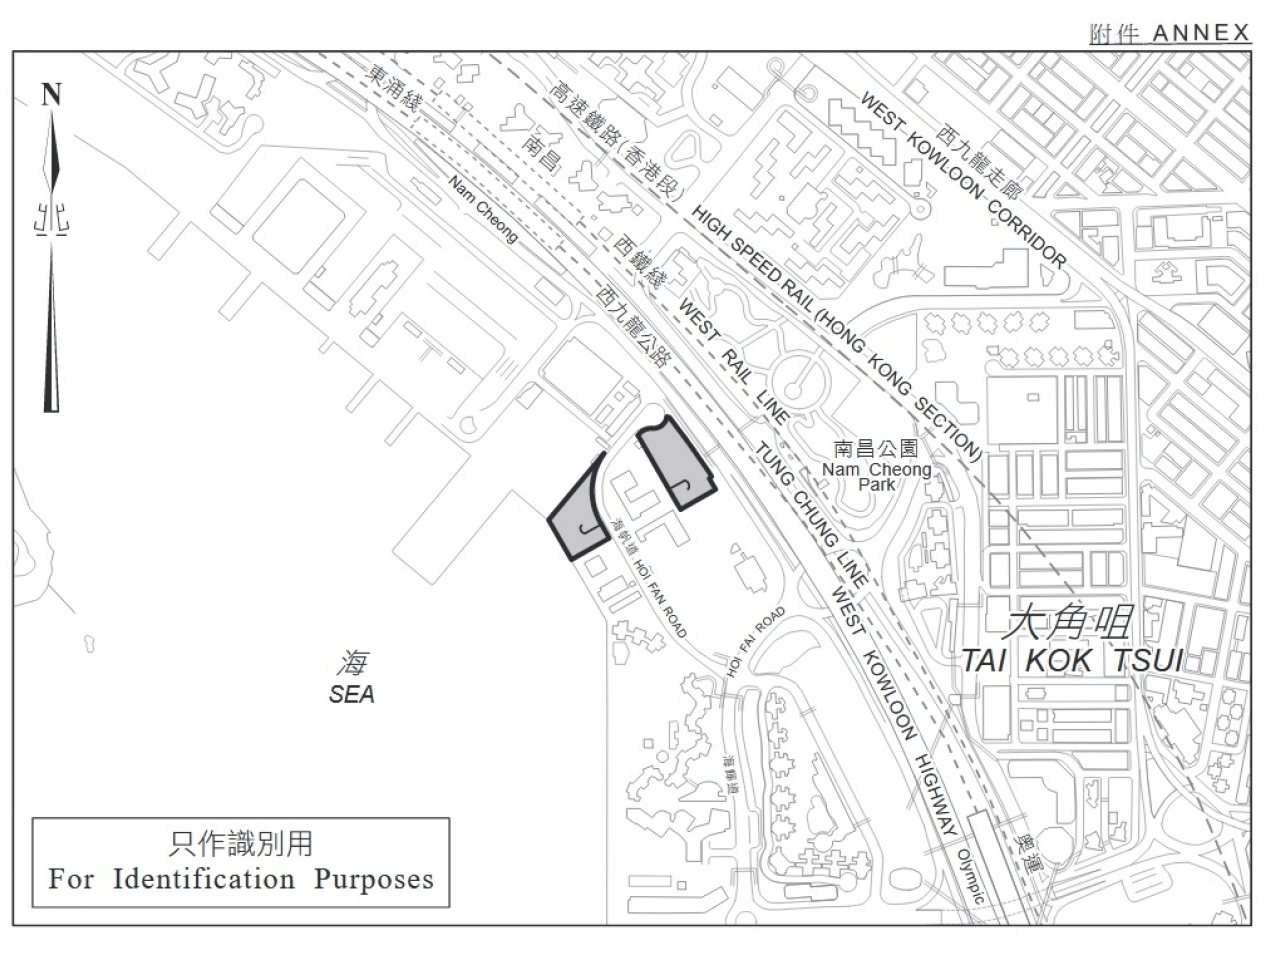 The government site spans both sides of Hoi Fan Road in Tai Kok Tsui. Image courtesy of Information Services Department